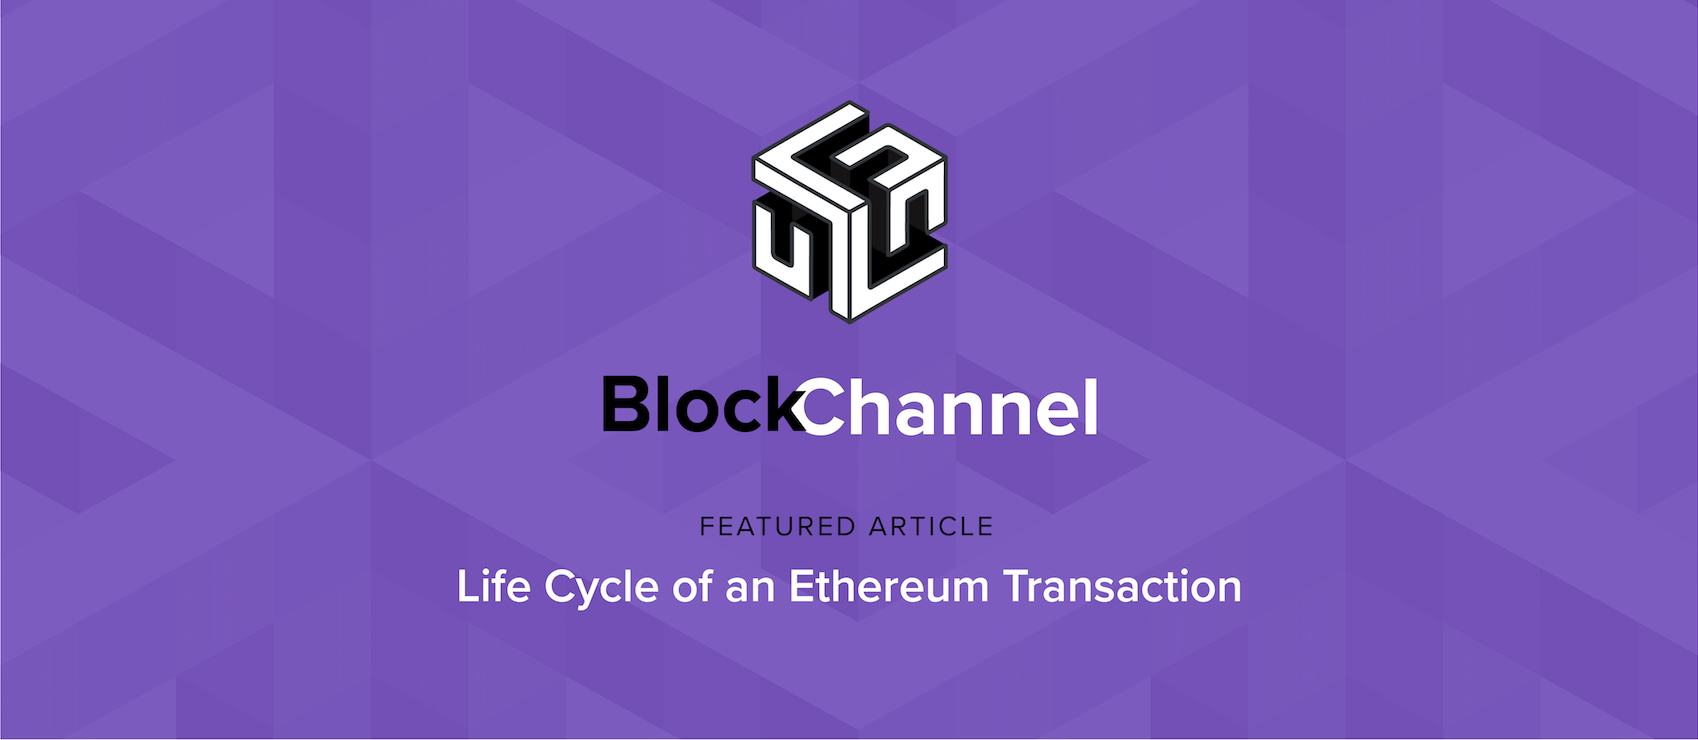 Life Cycle of an Ethereum Transaction - BlockChannel - Medium